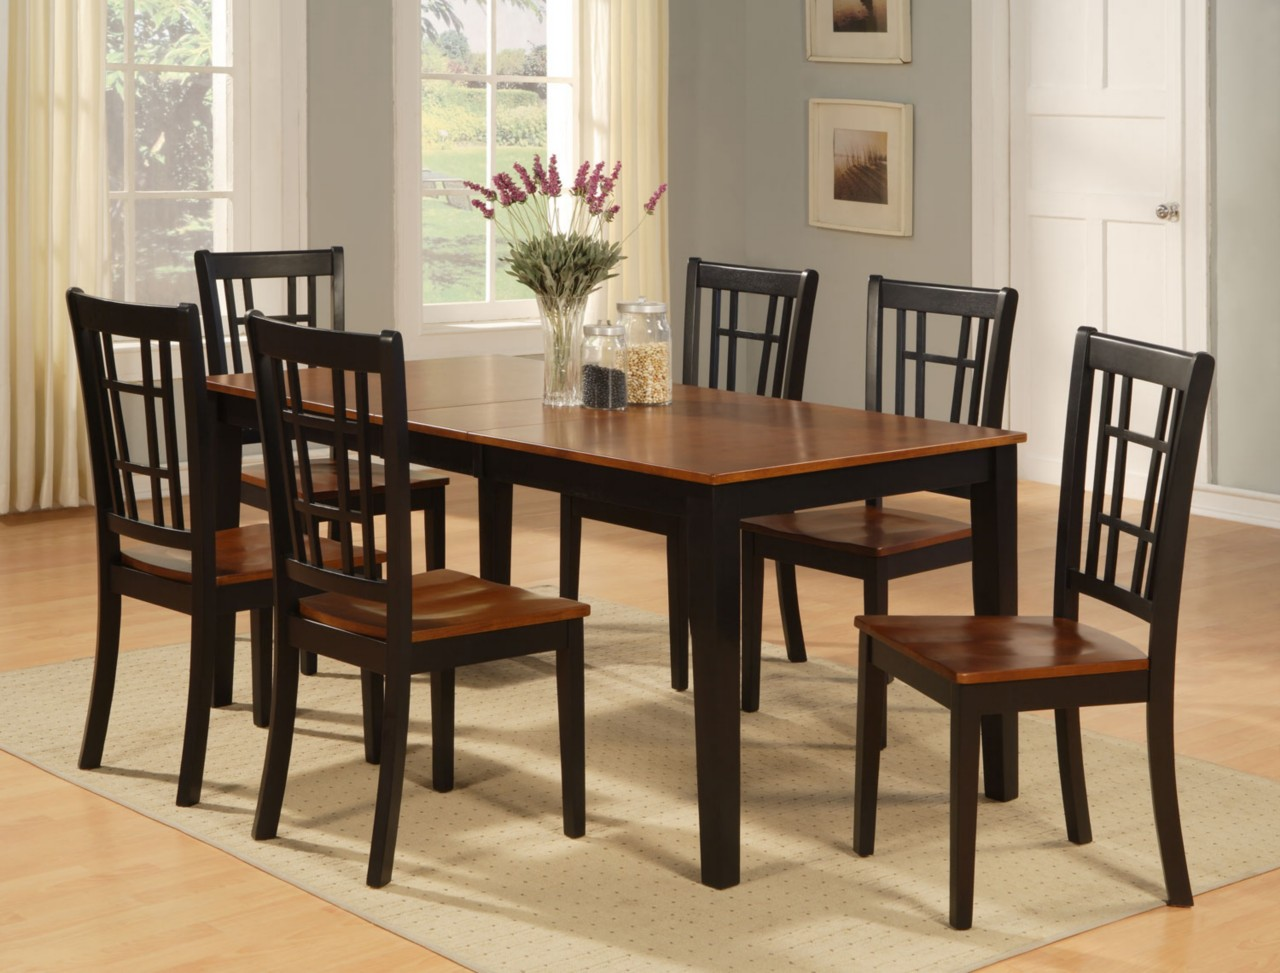 Dinette kitchen dining room set 7pc table and 6 chairs ebay for Kitchen dining sets